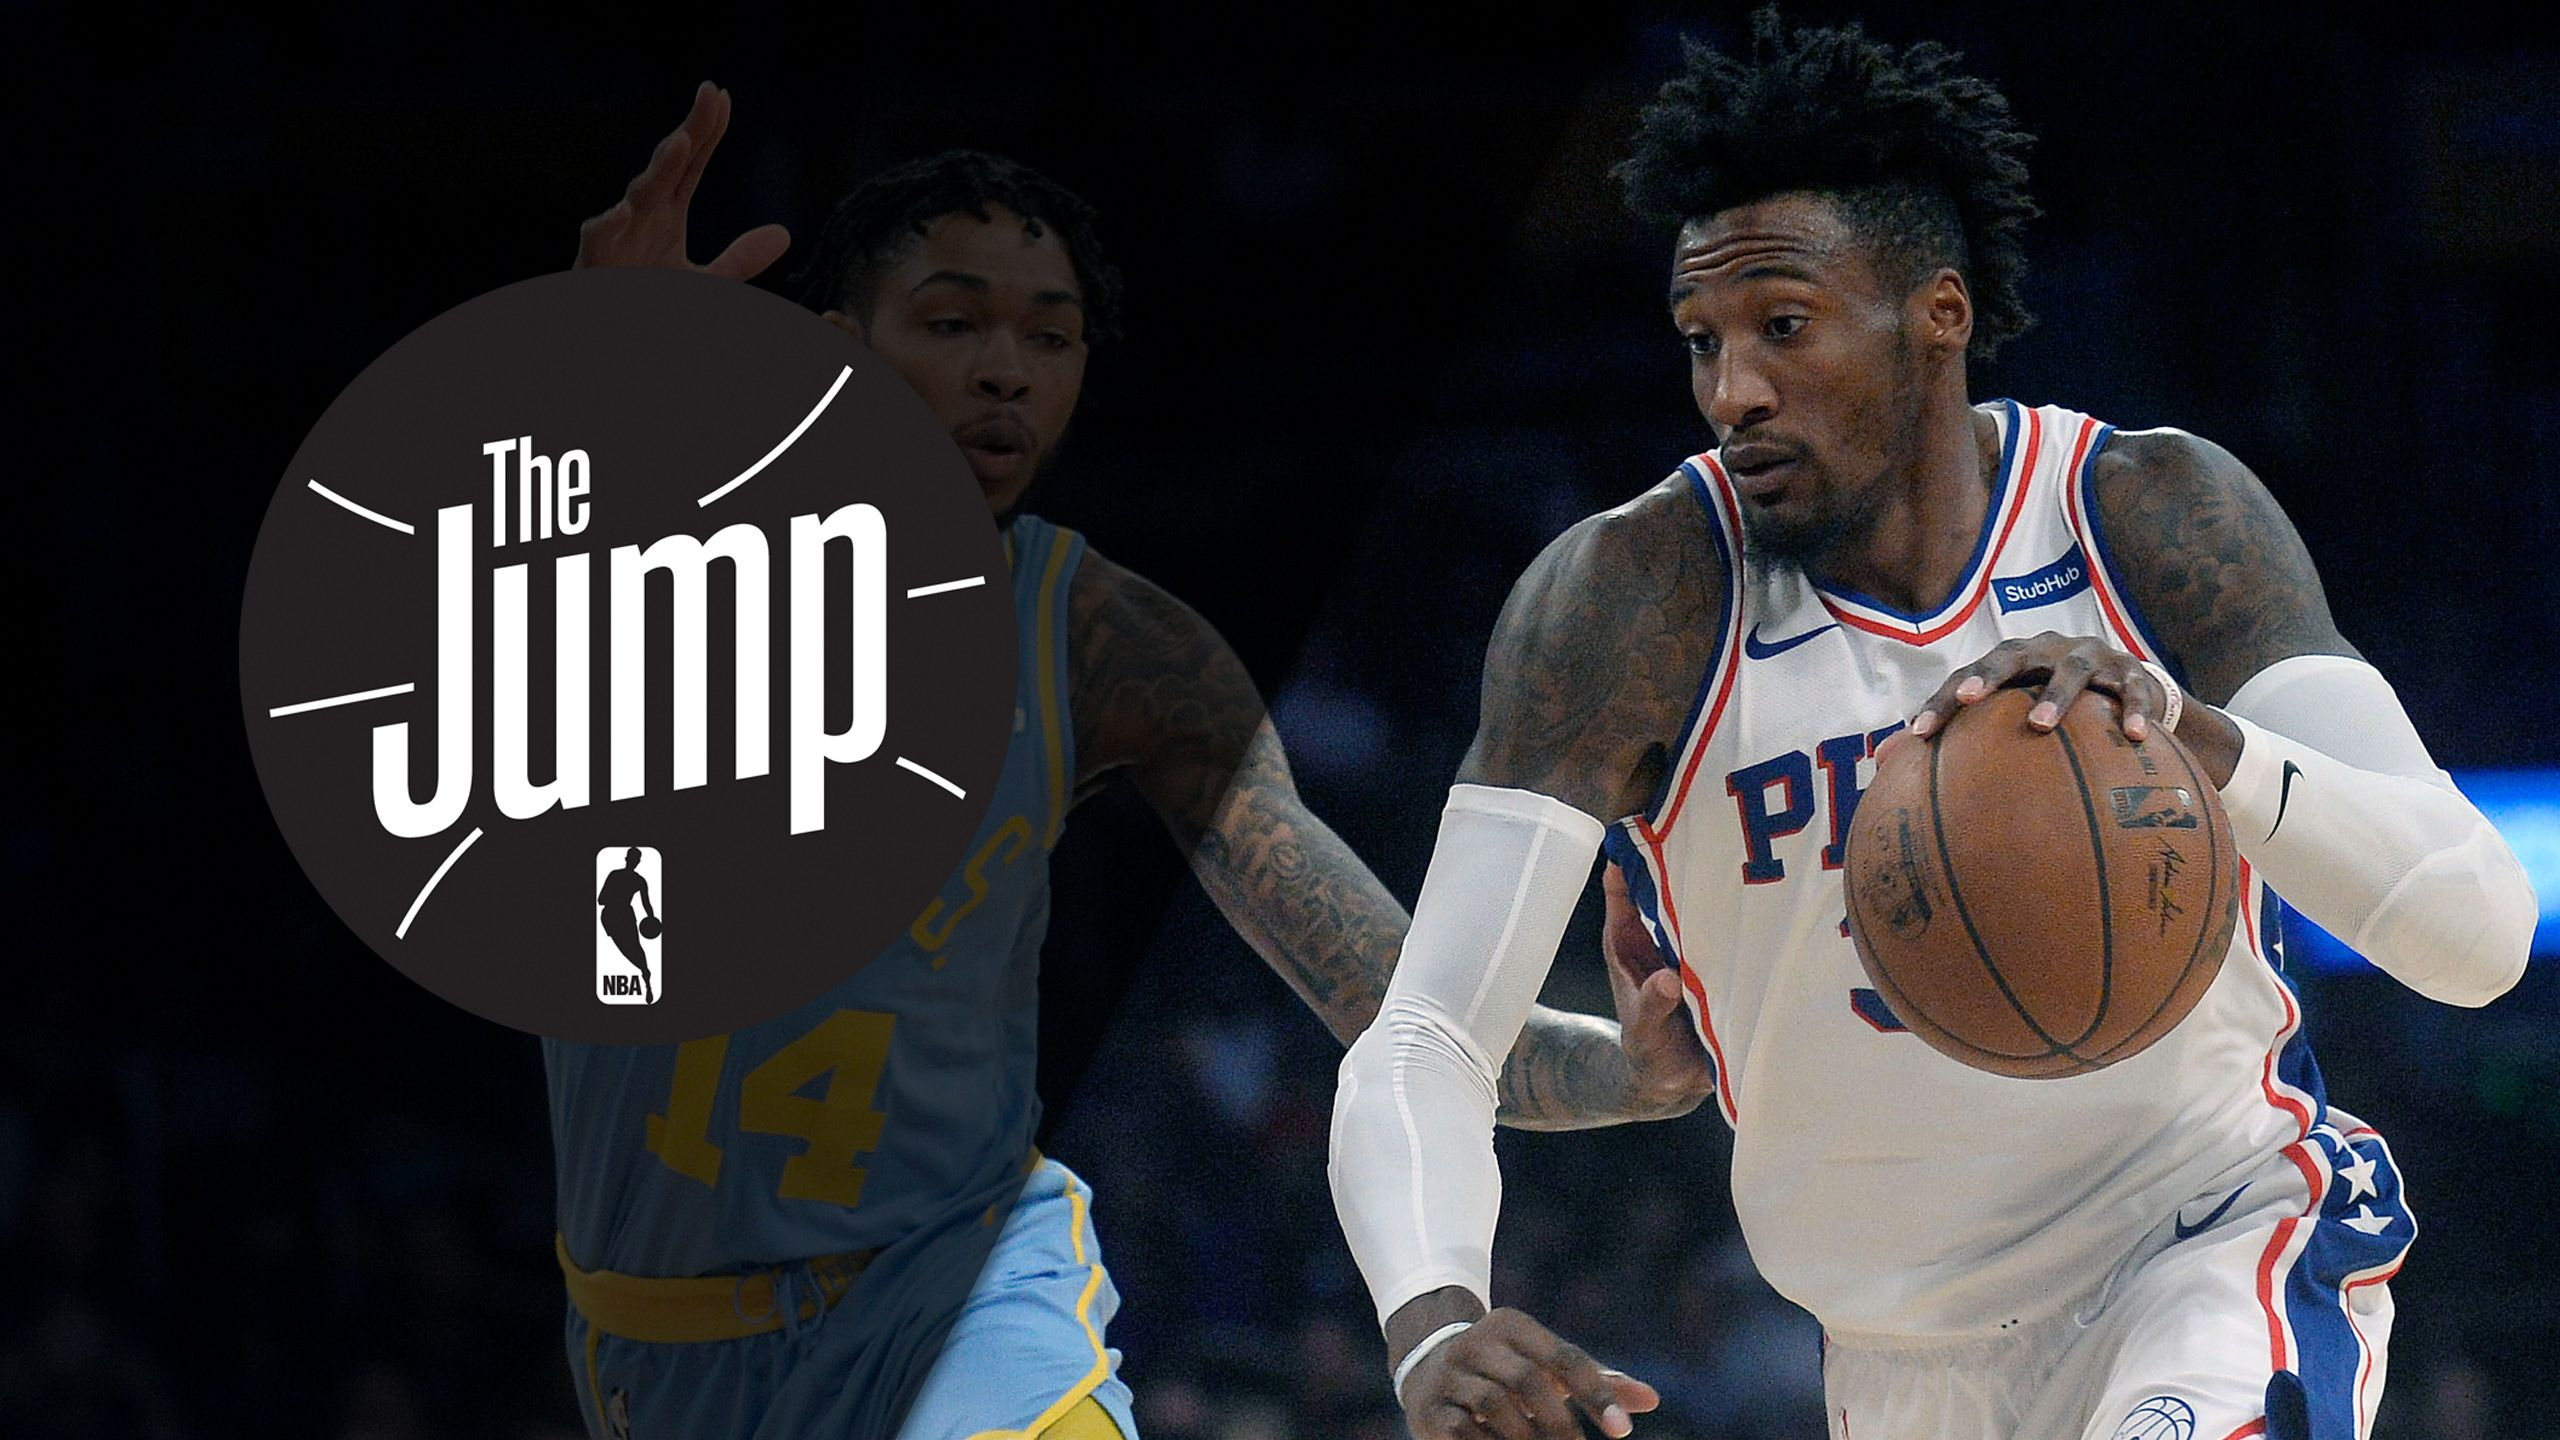 Thu, 11/16 - NBA: The Jump